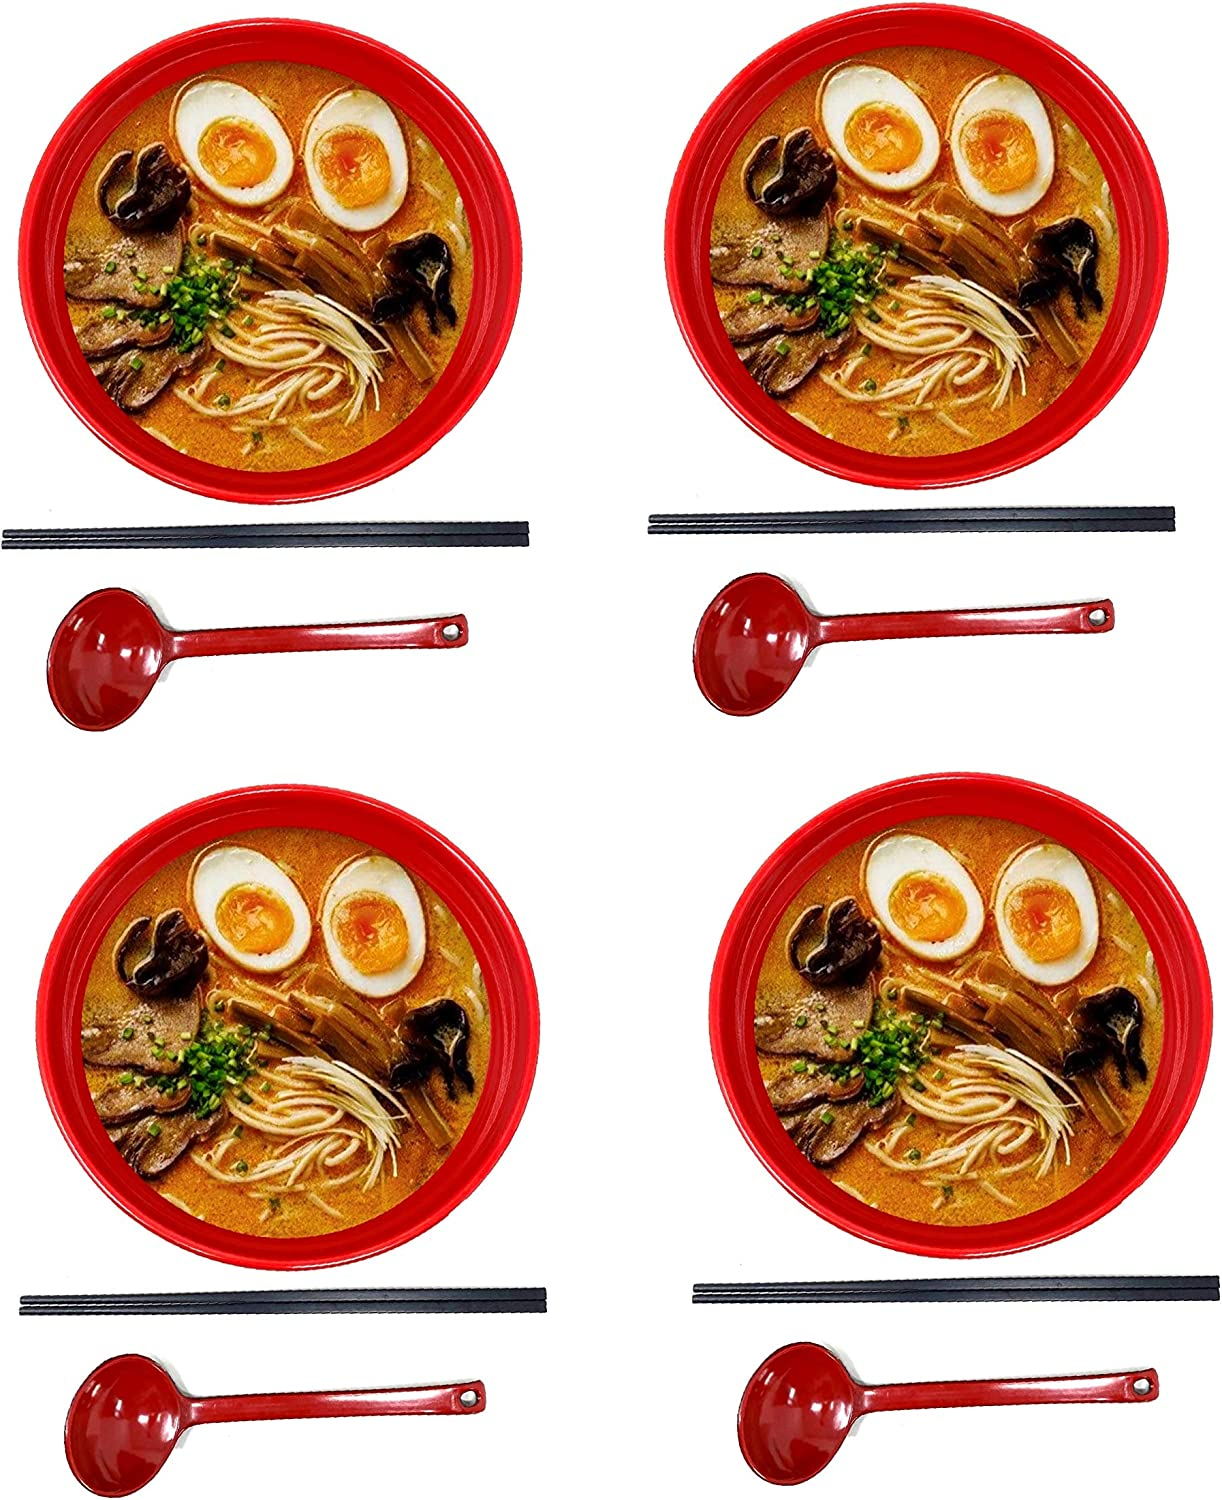 YOUZHI 4 Sets Large Japanese Soup Bowl Melamine Hard Plastic Dishware Ramen Bowl Set with Matching Spoon and Chopsticks for Udon Soba Pho Asian Noodles ,Red 12 Piece 1700ml, Black, Red, 9 inches